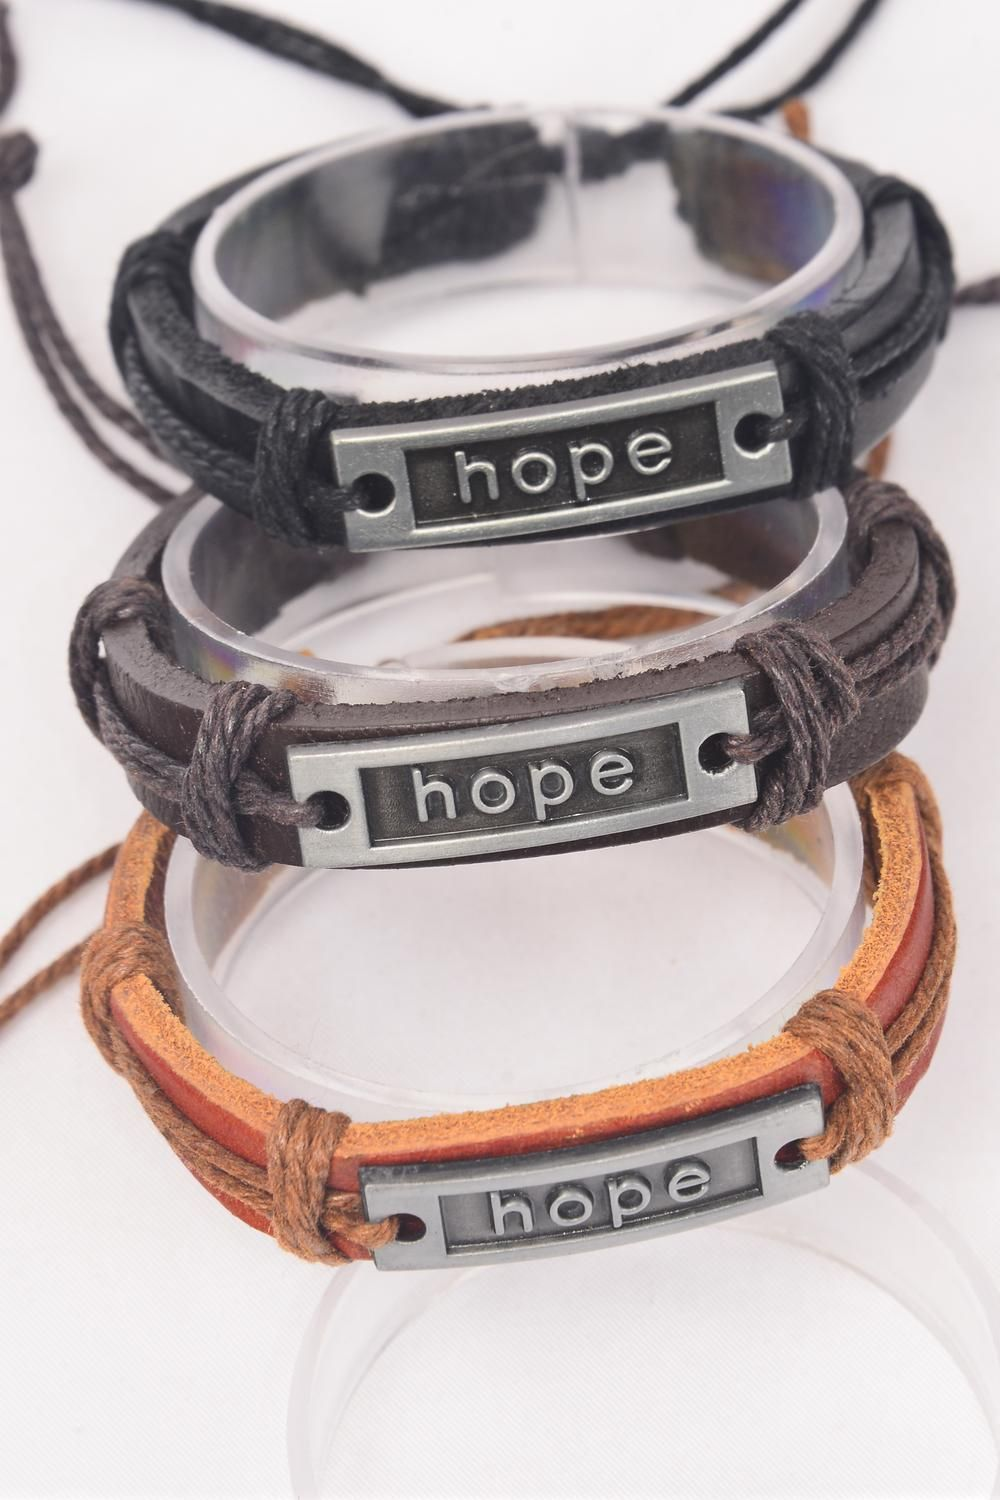 Bracelet Real Leather Band Hope Silver/DZ **HOPE** Unisex,Adjustable,4 of each Color Mix,Individual Hang tag & OPP Bag & UPC Code